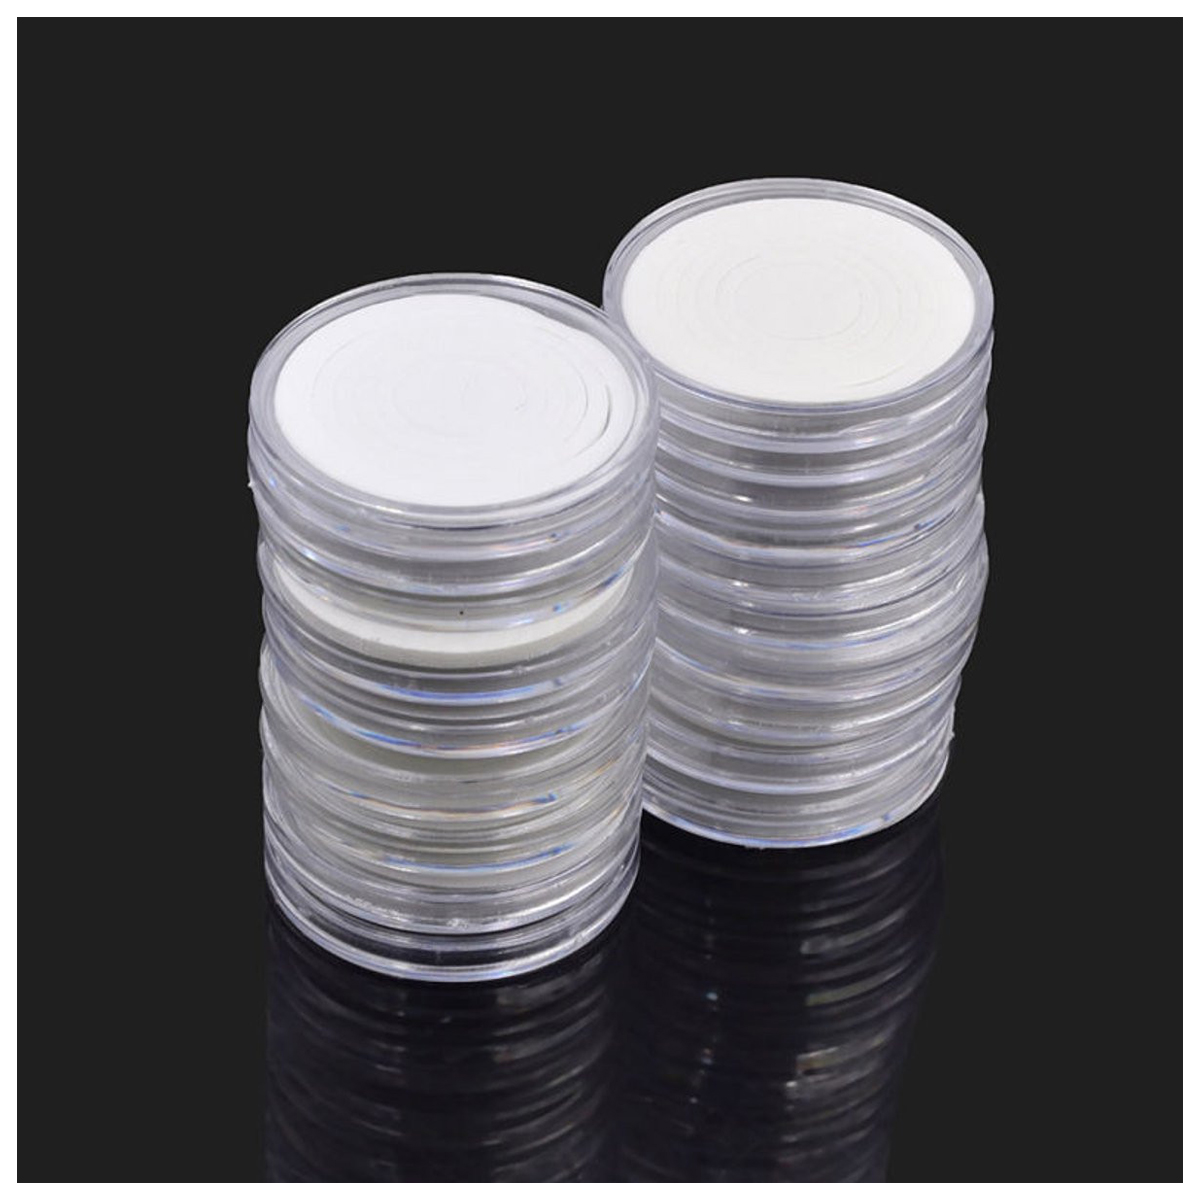 60 Pcs 46mm Coin Cases Capsules Holder Applied Clear Plastic Round Storage Box